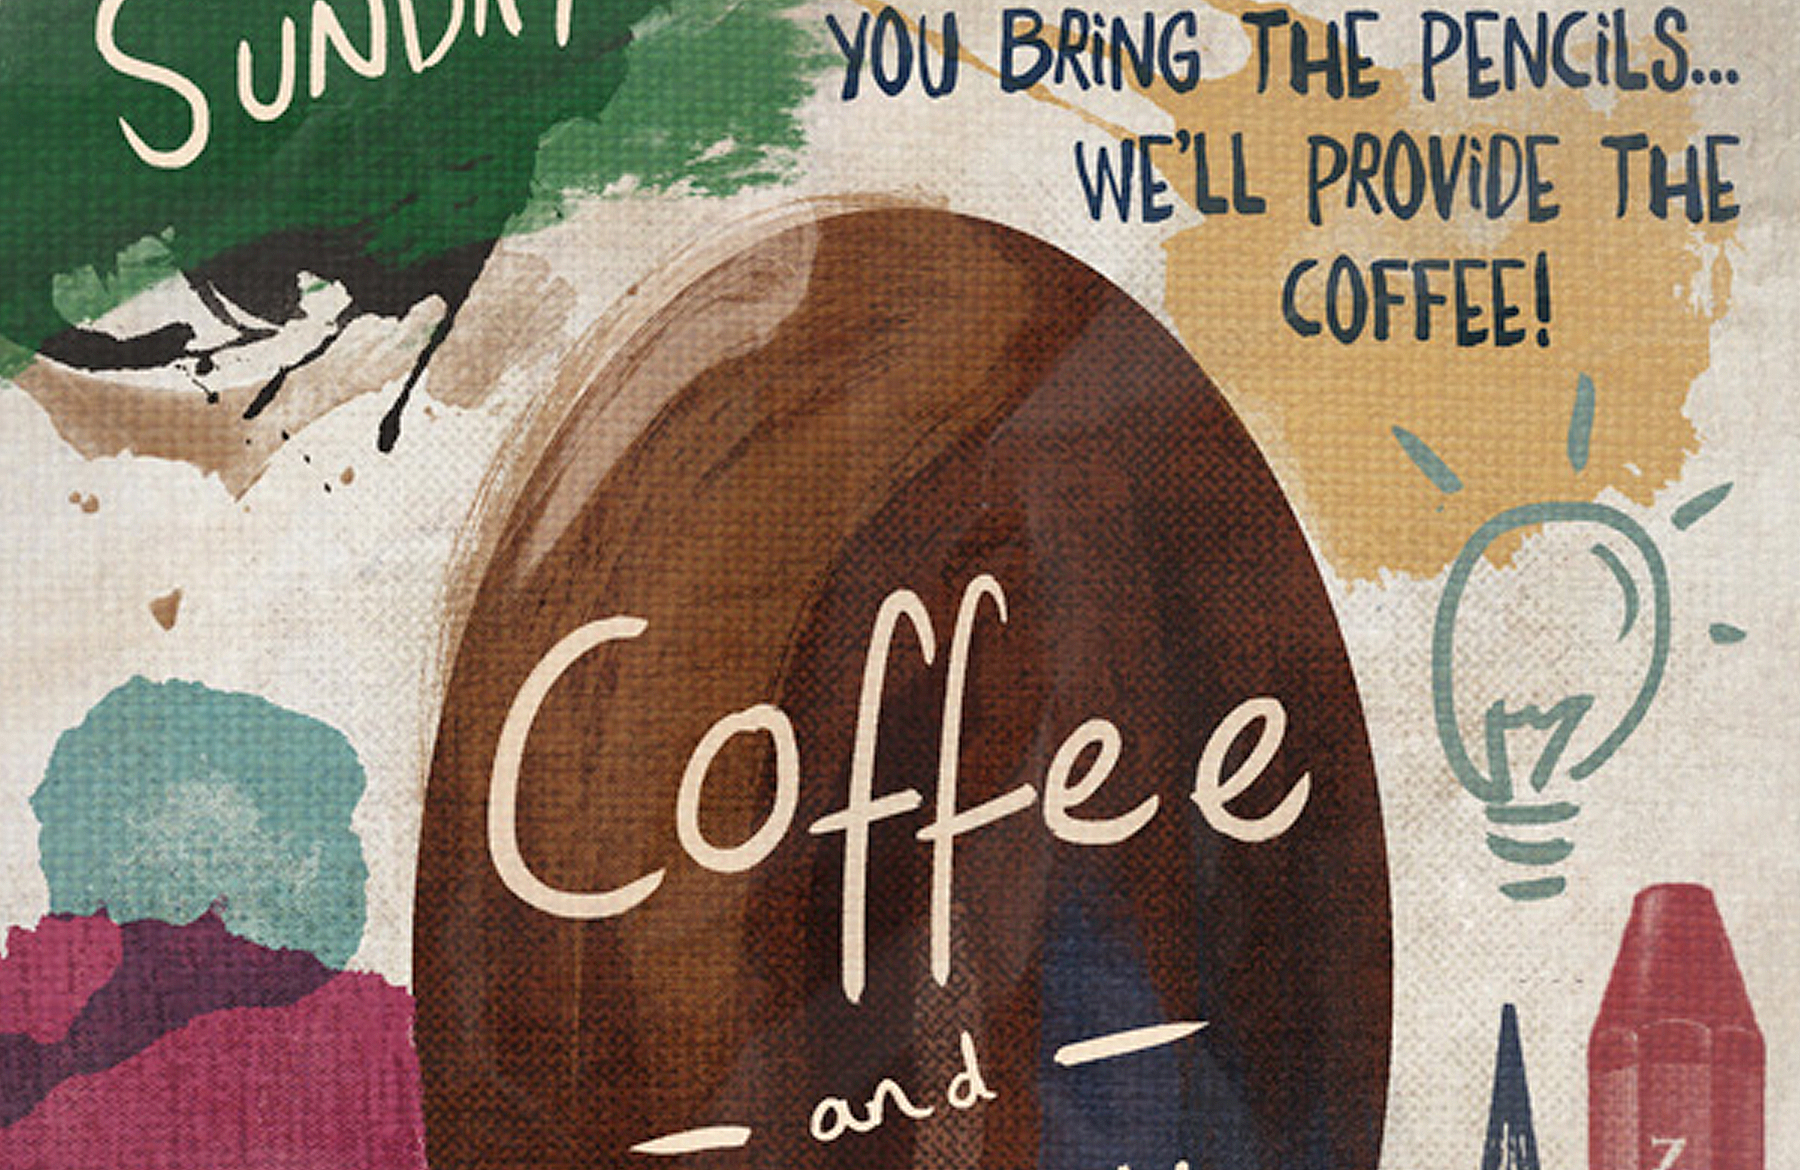 Design a Creative Coffee Shop Meetup Poster - Design Cuts